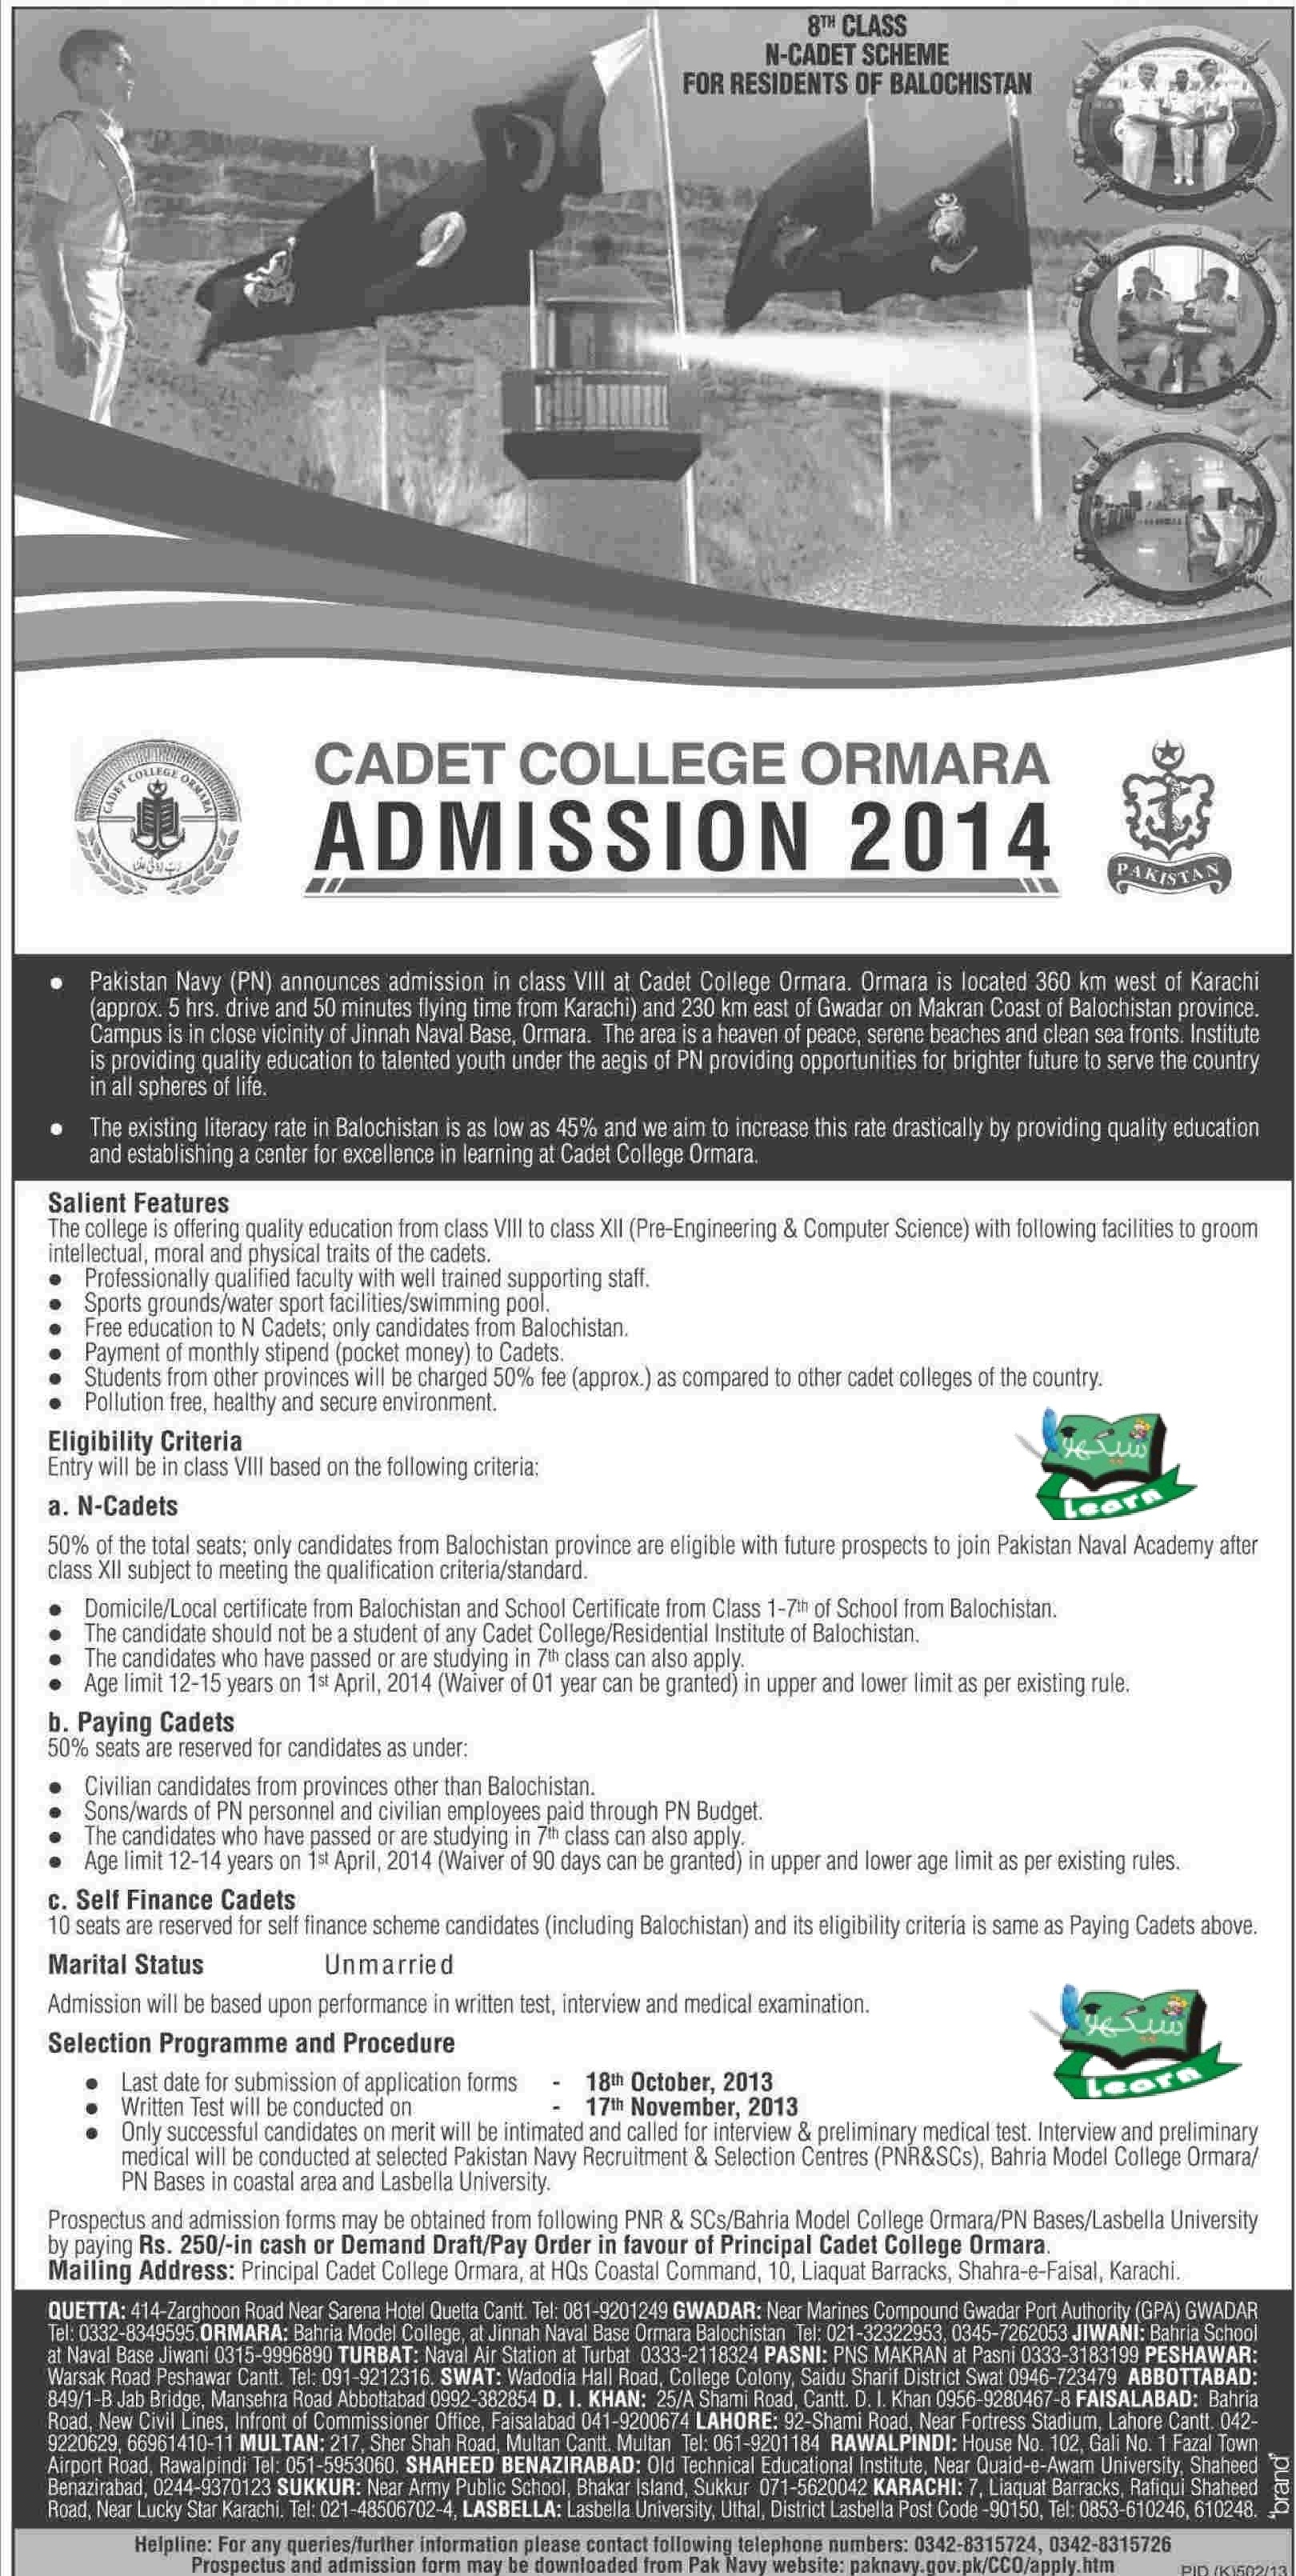 Cadet College Ormara Admission 2014